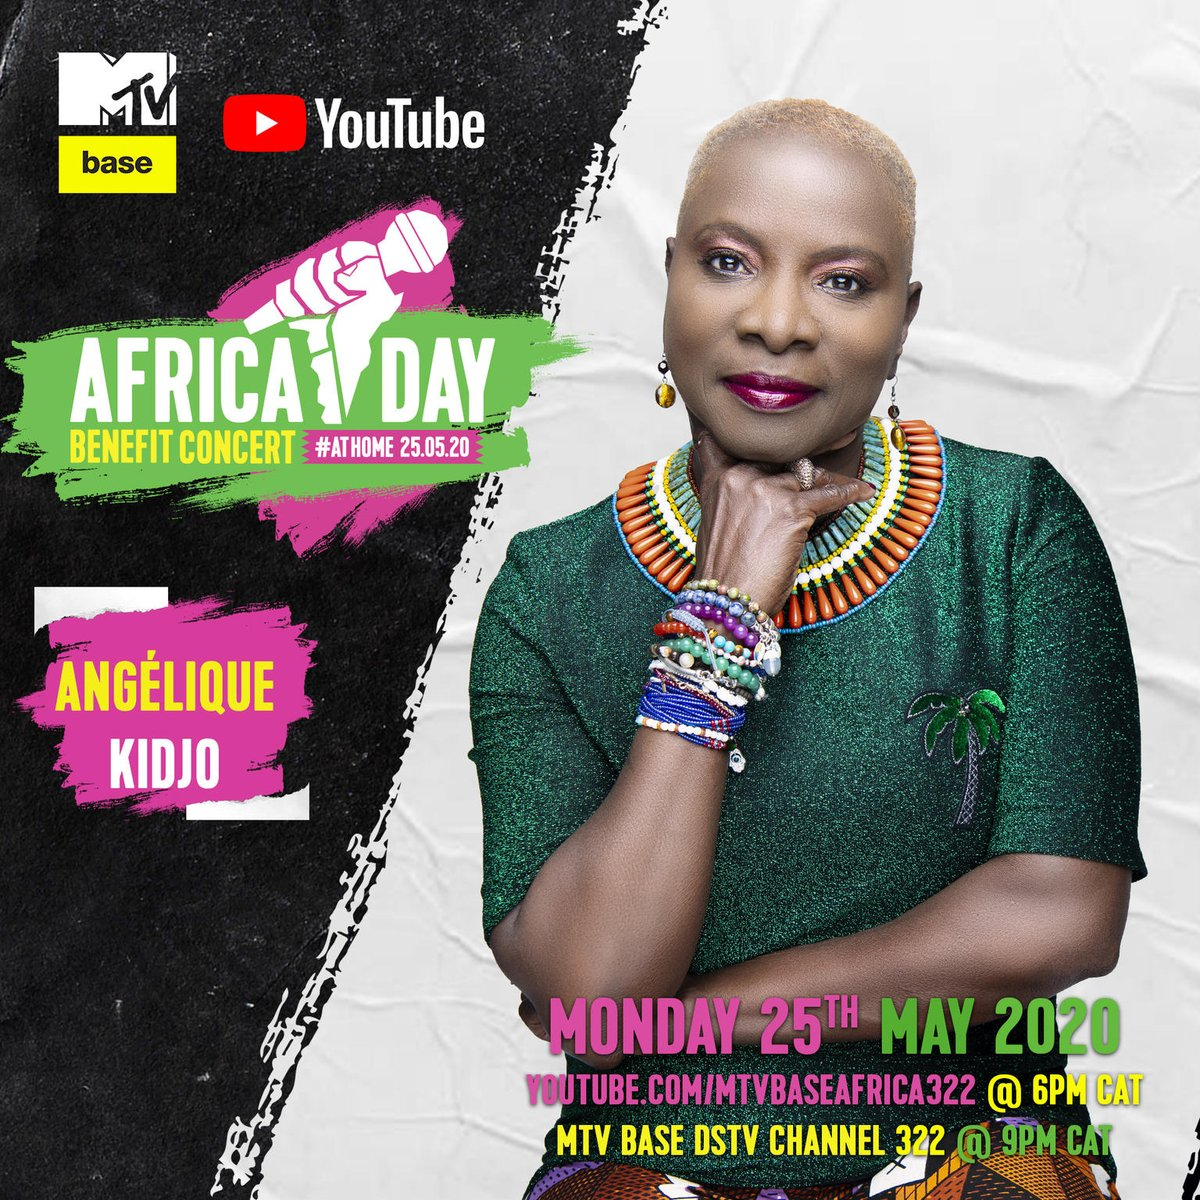 Did you tune into @MTVBaseAfrica x @YouTube for the #AfricaDayBenefitConcert? #Africa's greatest stars incl @UNICEF Goodwill Ambassador @angeliquekidjo - AND all to help the continent's most vulnerable children cope with the #COVID19 crisis:  http:// uni.cf/Africa     #AloneTogether <br>http://pic.twitter.com/nShtYcdBKY